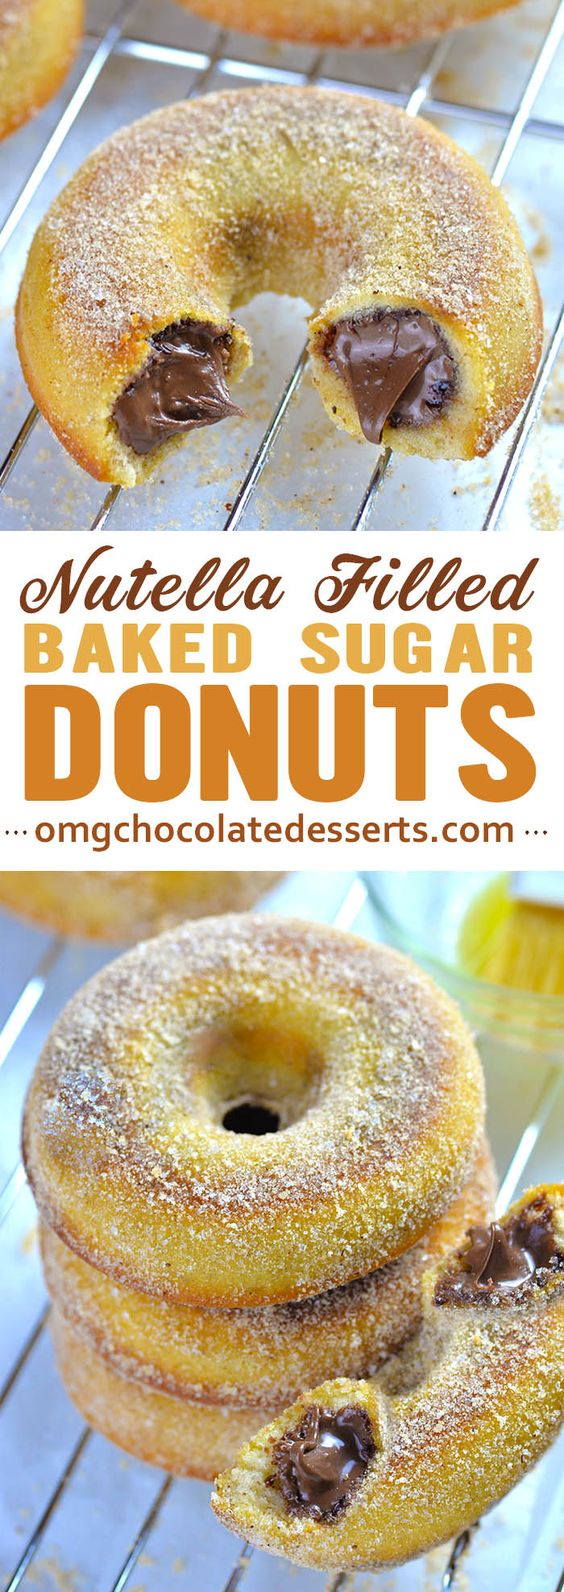 Nutella Filled Baked Donuts